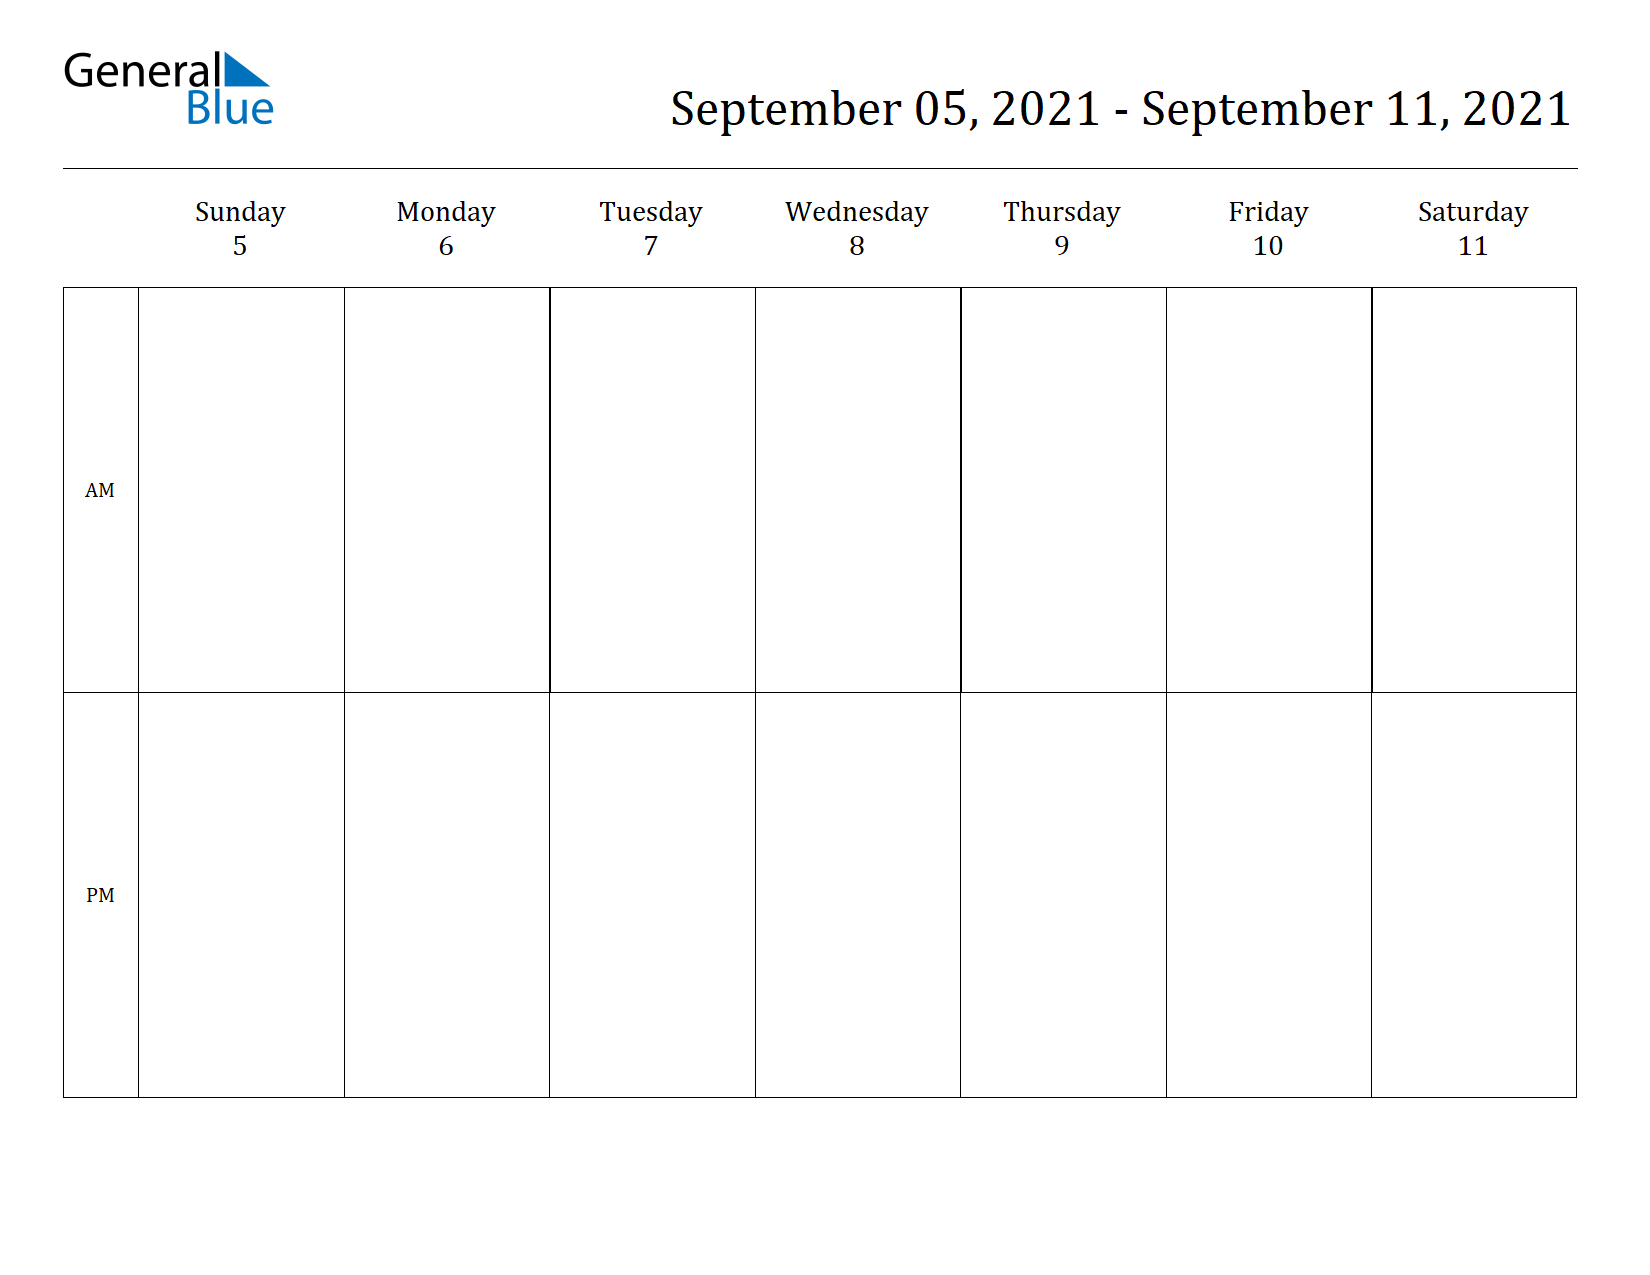 Weekly Calendar for Sep 05, 2021 to Sep 11, 2021